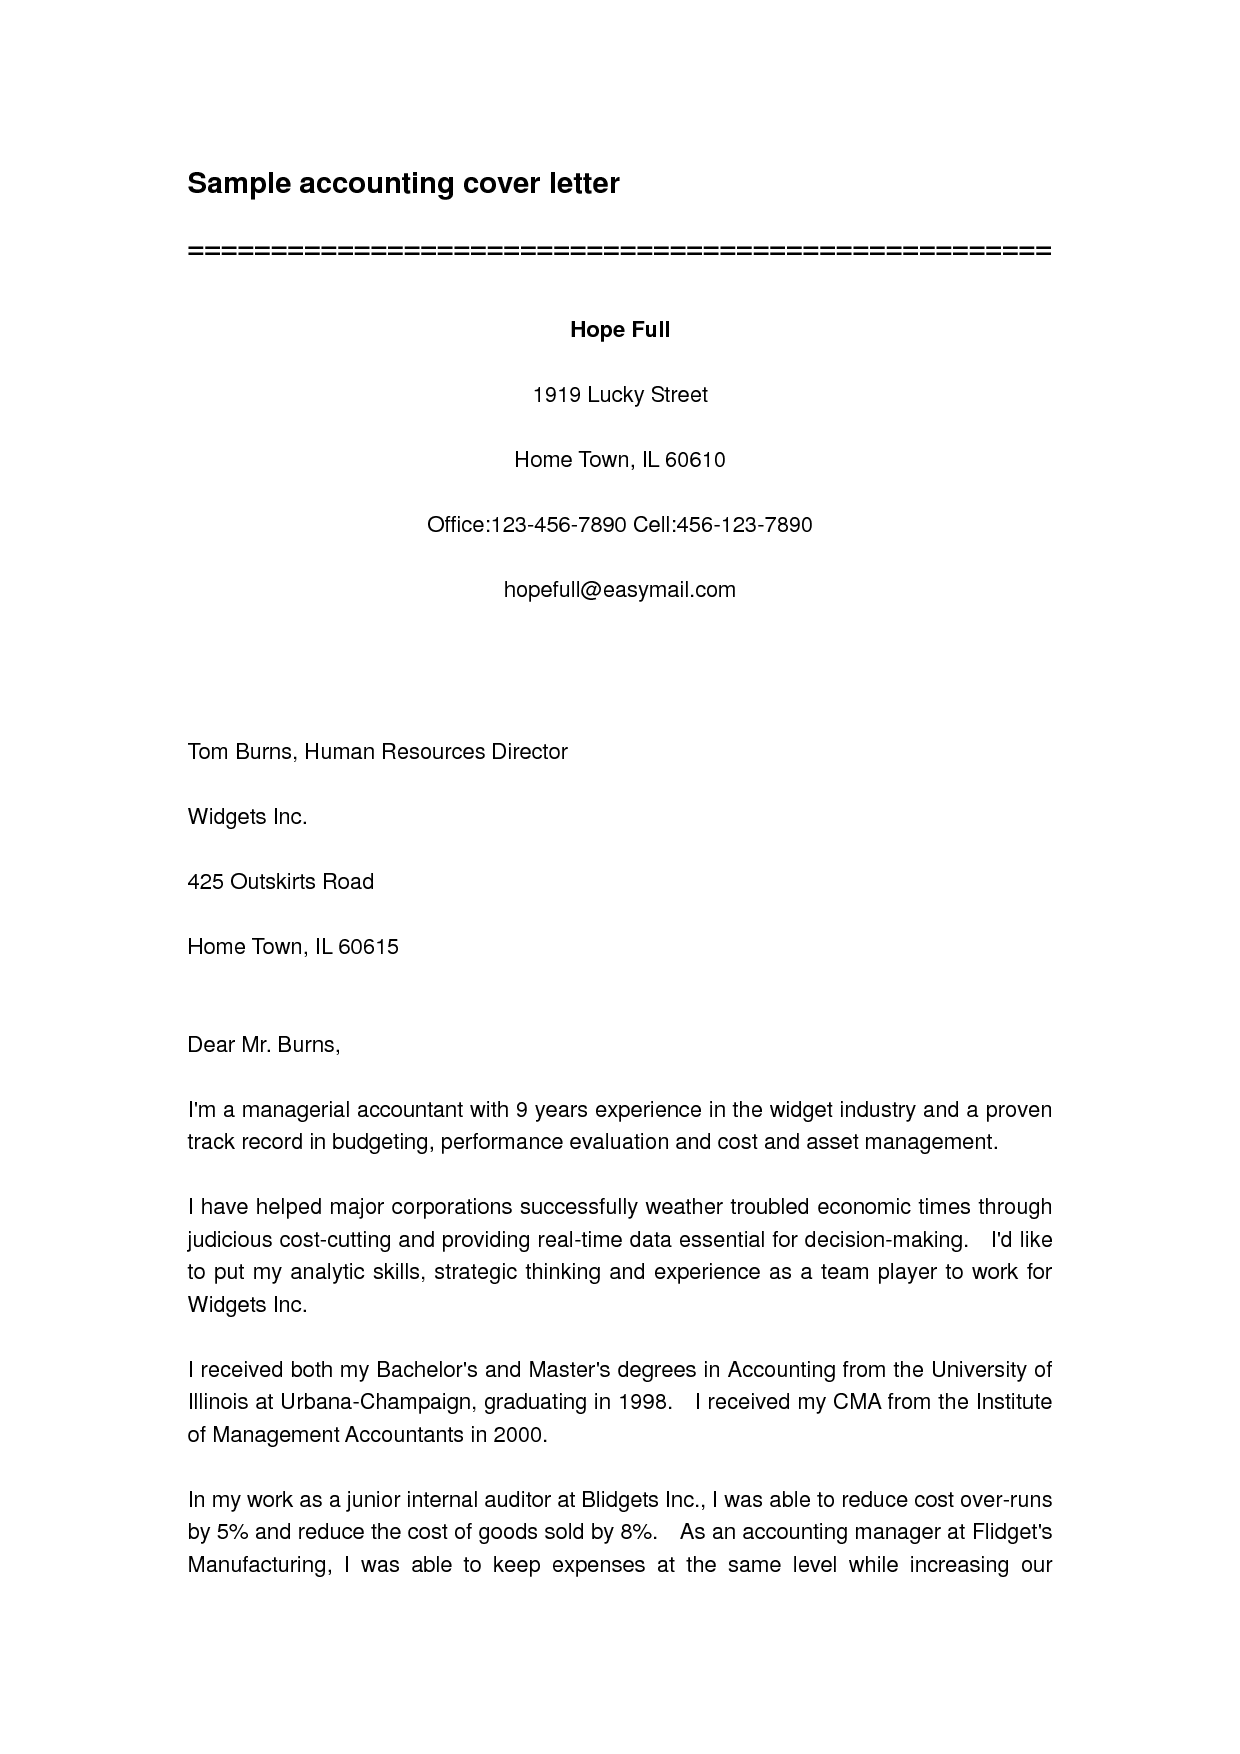 Cover Letter Sample Letters Templates Ms Word